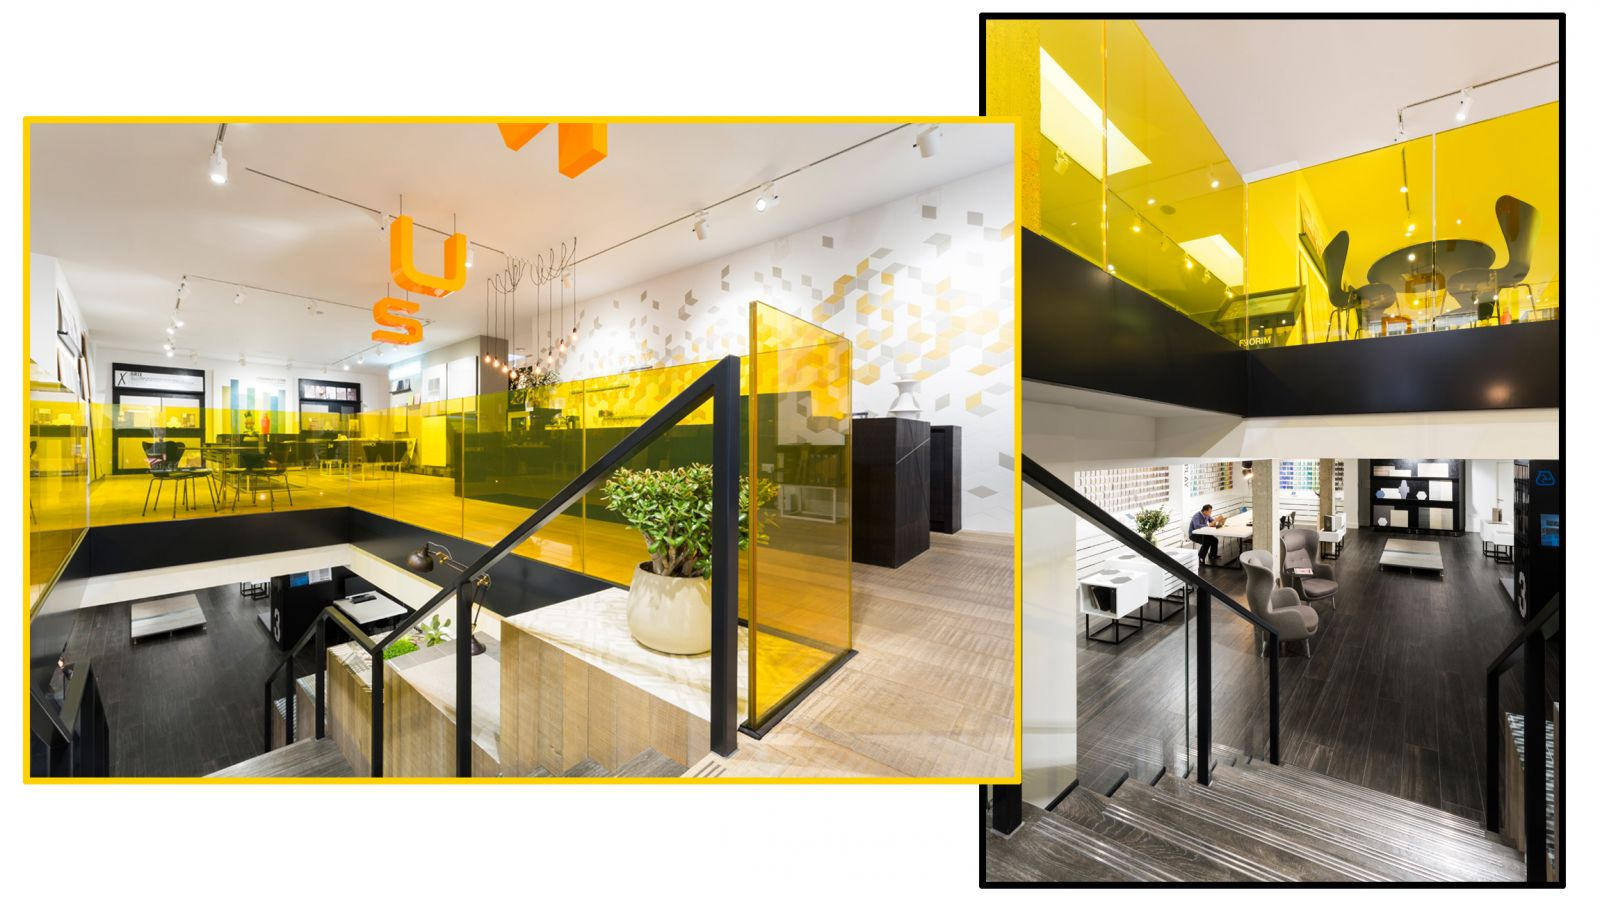 Domus Tiles' Showroom is on Solid Ground with Knauf